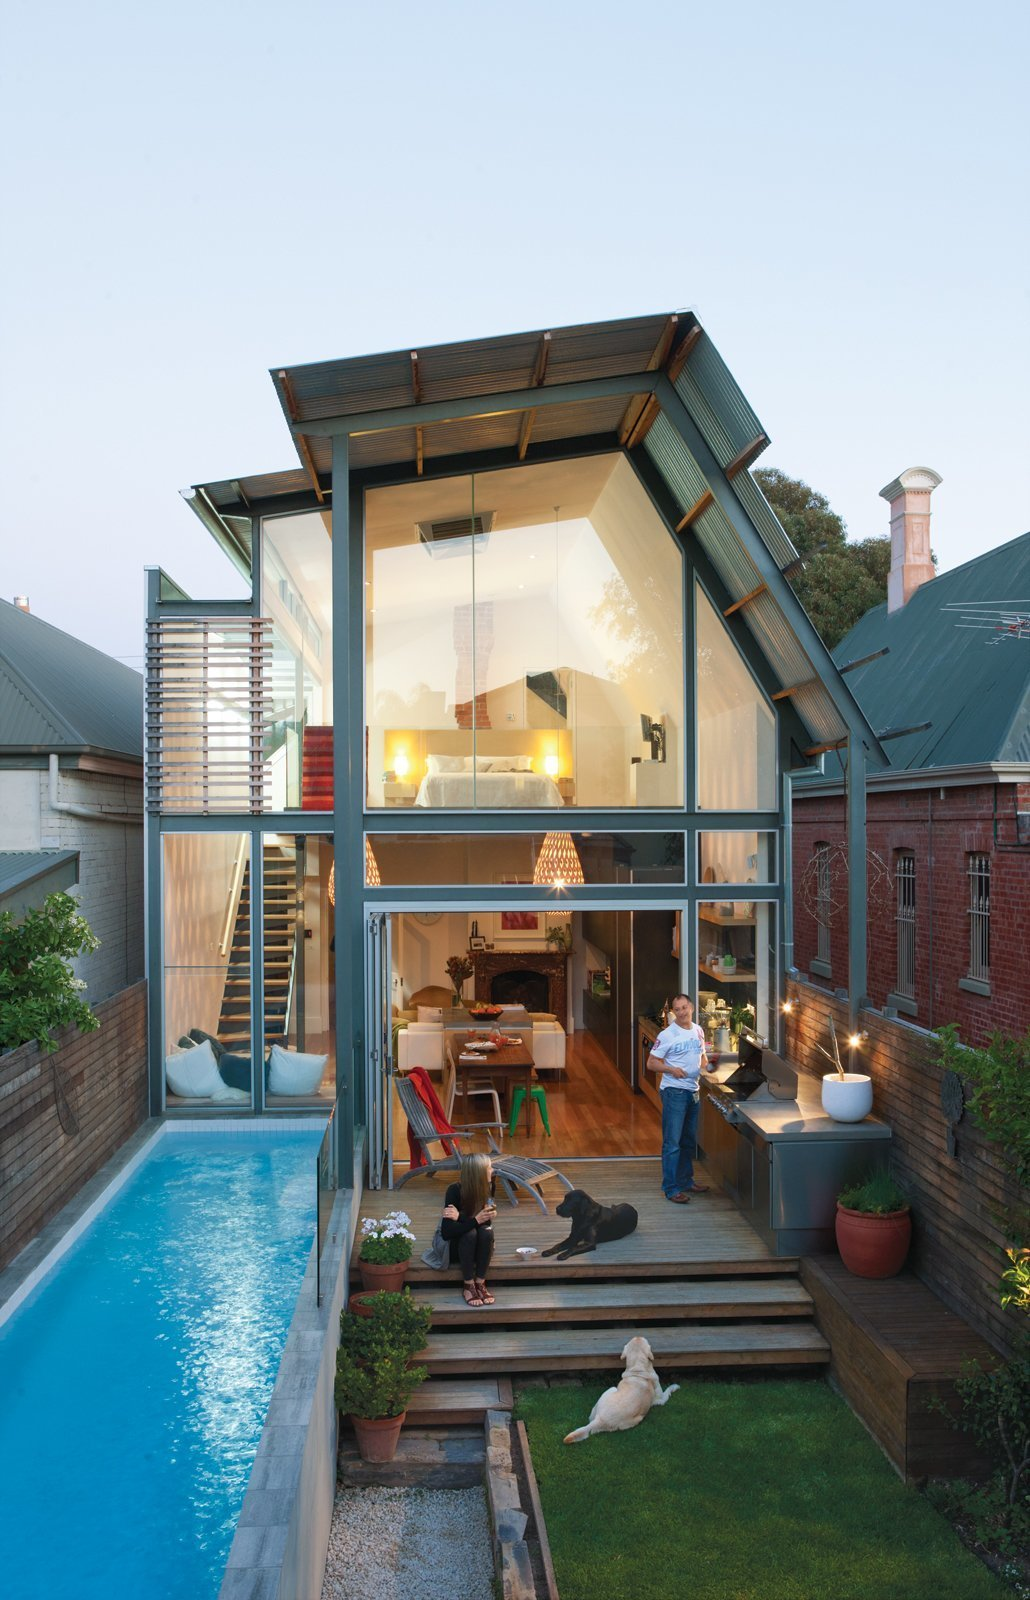 Outdoor, Raised Planters, Grass, Back Yard, Small, Wood, Small, Horizontal, and Wood The renovation and two-story extension of this 1880 Adelaide bungalow includes a 23-foot rear lot with a pool.  Best Outdoor Back Yard Wood Photos from 11 Amazing Australian Homes